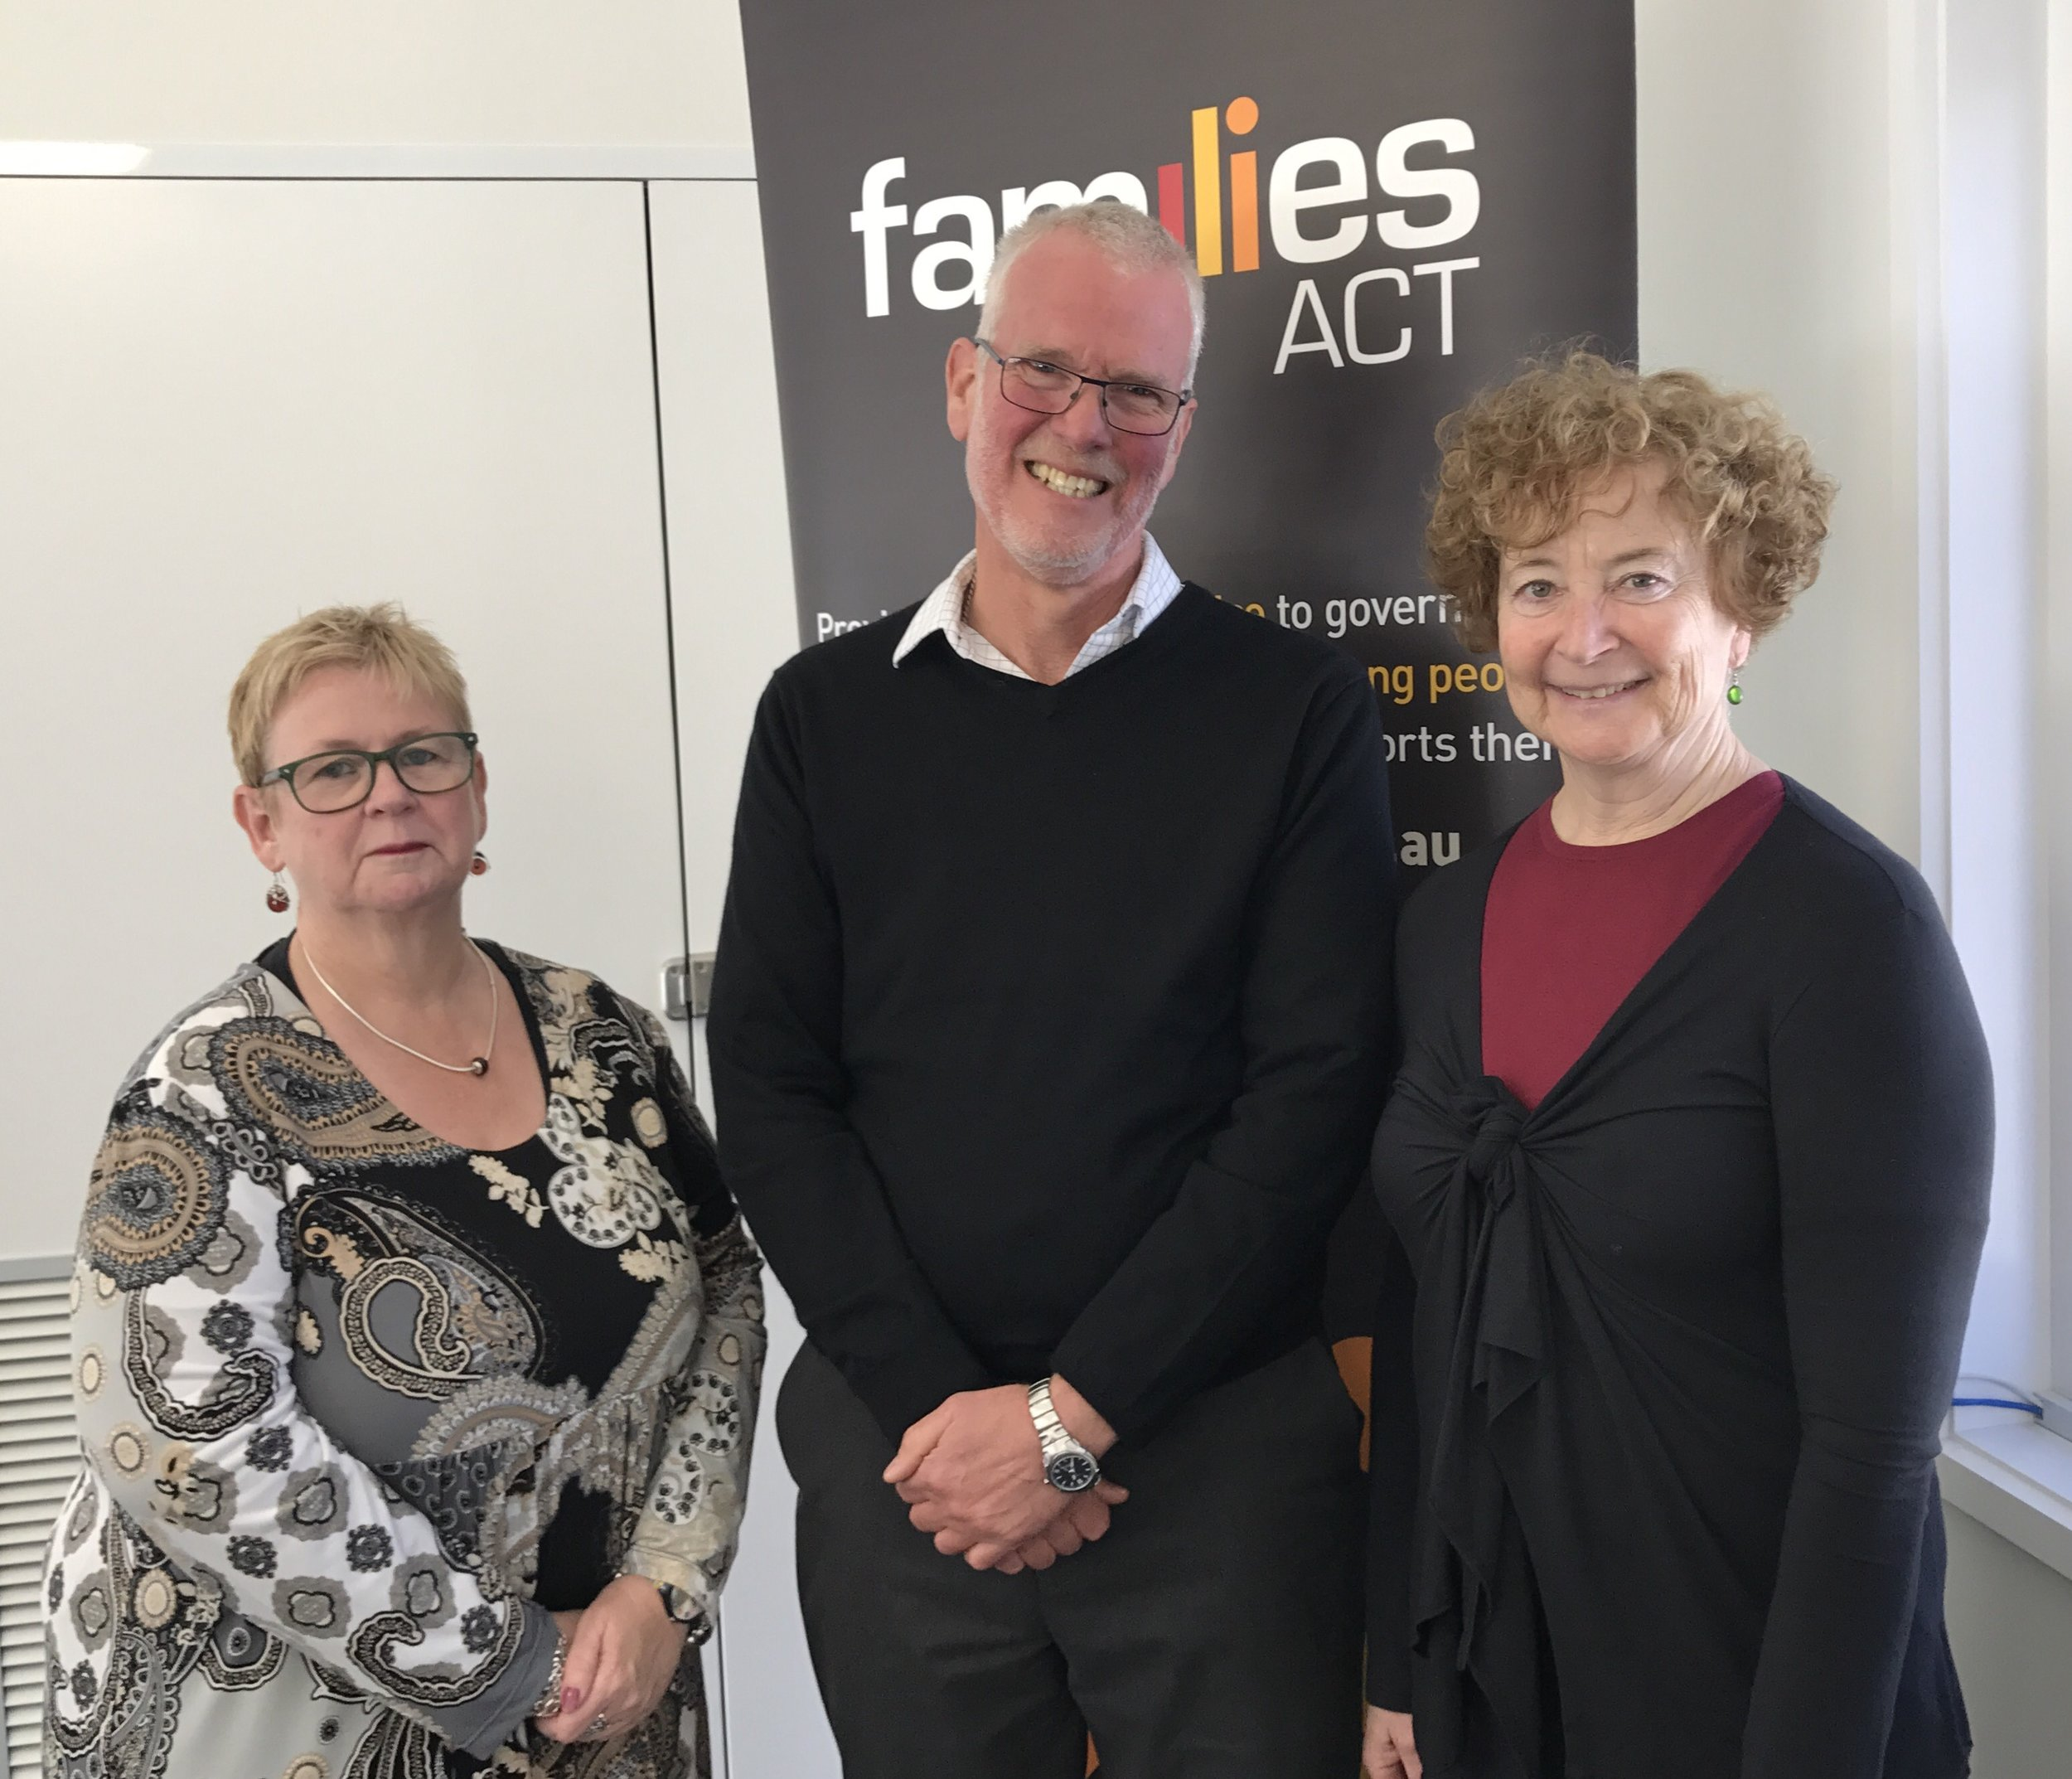 (L-R) Pauline Thorneloe, President of the Families ACT Board, with Executive Officer Will Mollison, and outgoing President Mary Pekin.